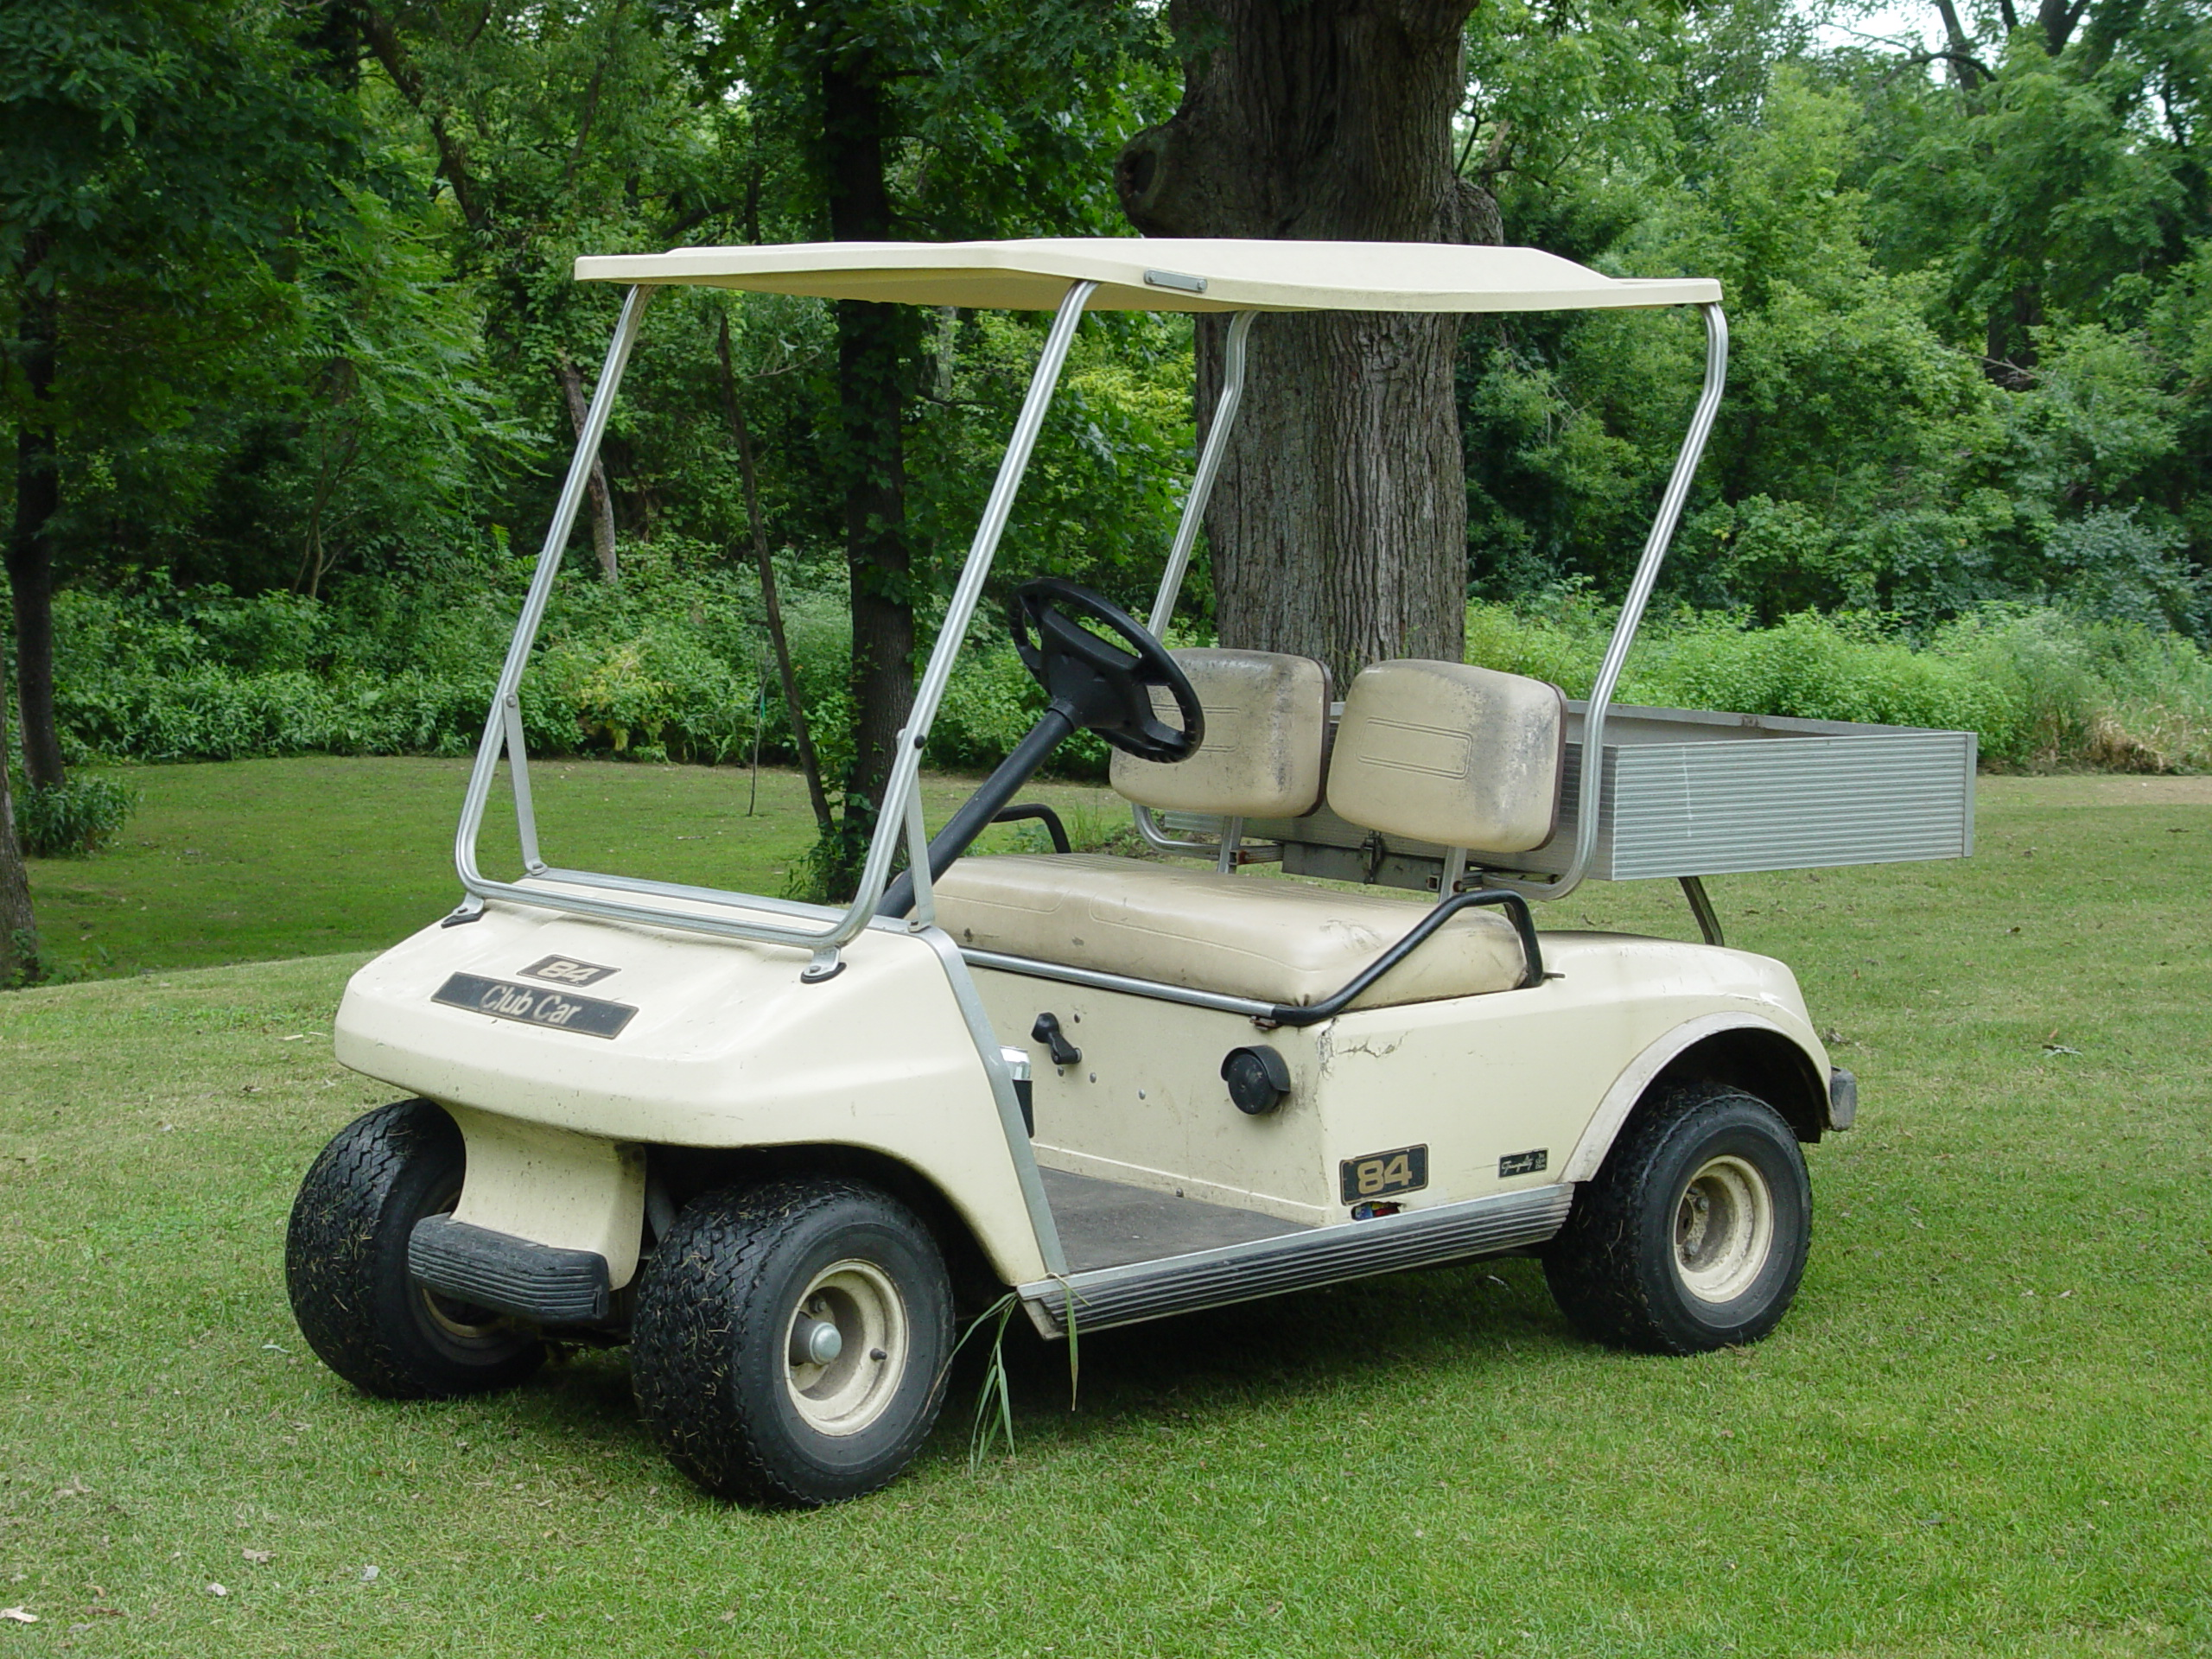 Unknown but potential golf cart issues